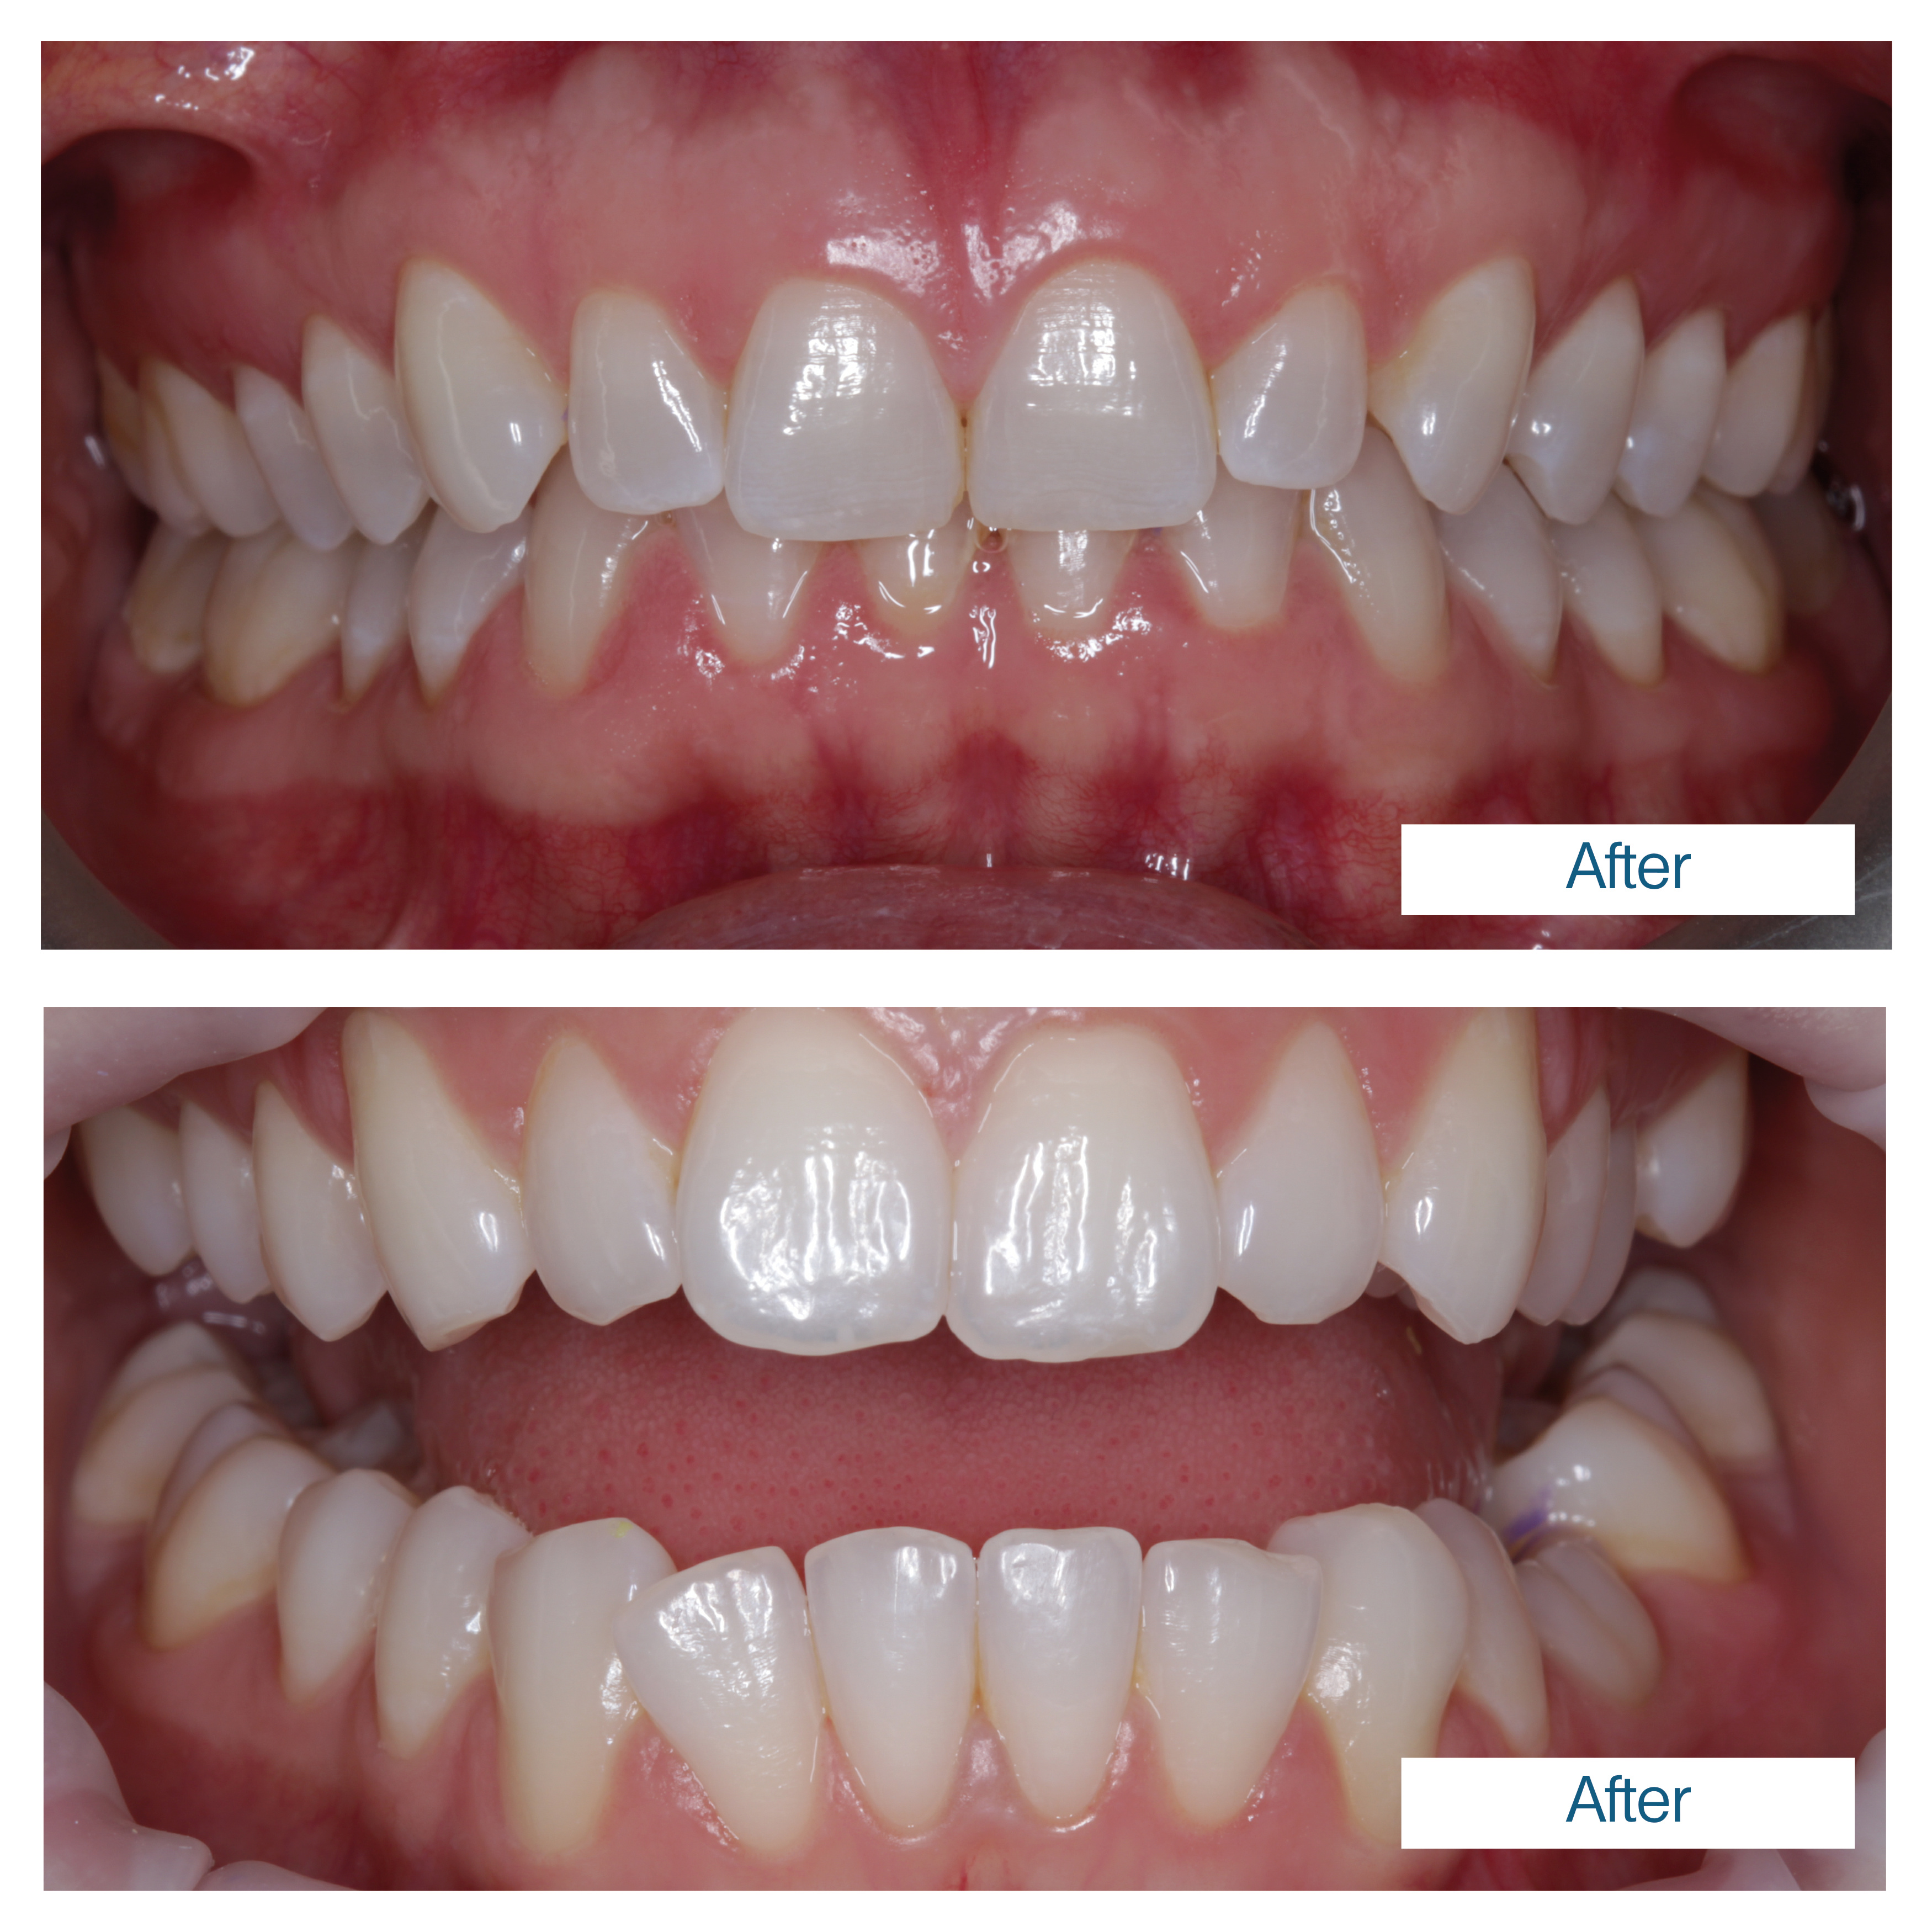 Teeth whitening - 2 patients